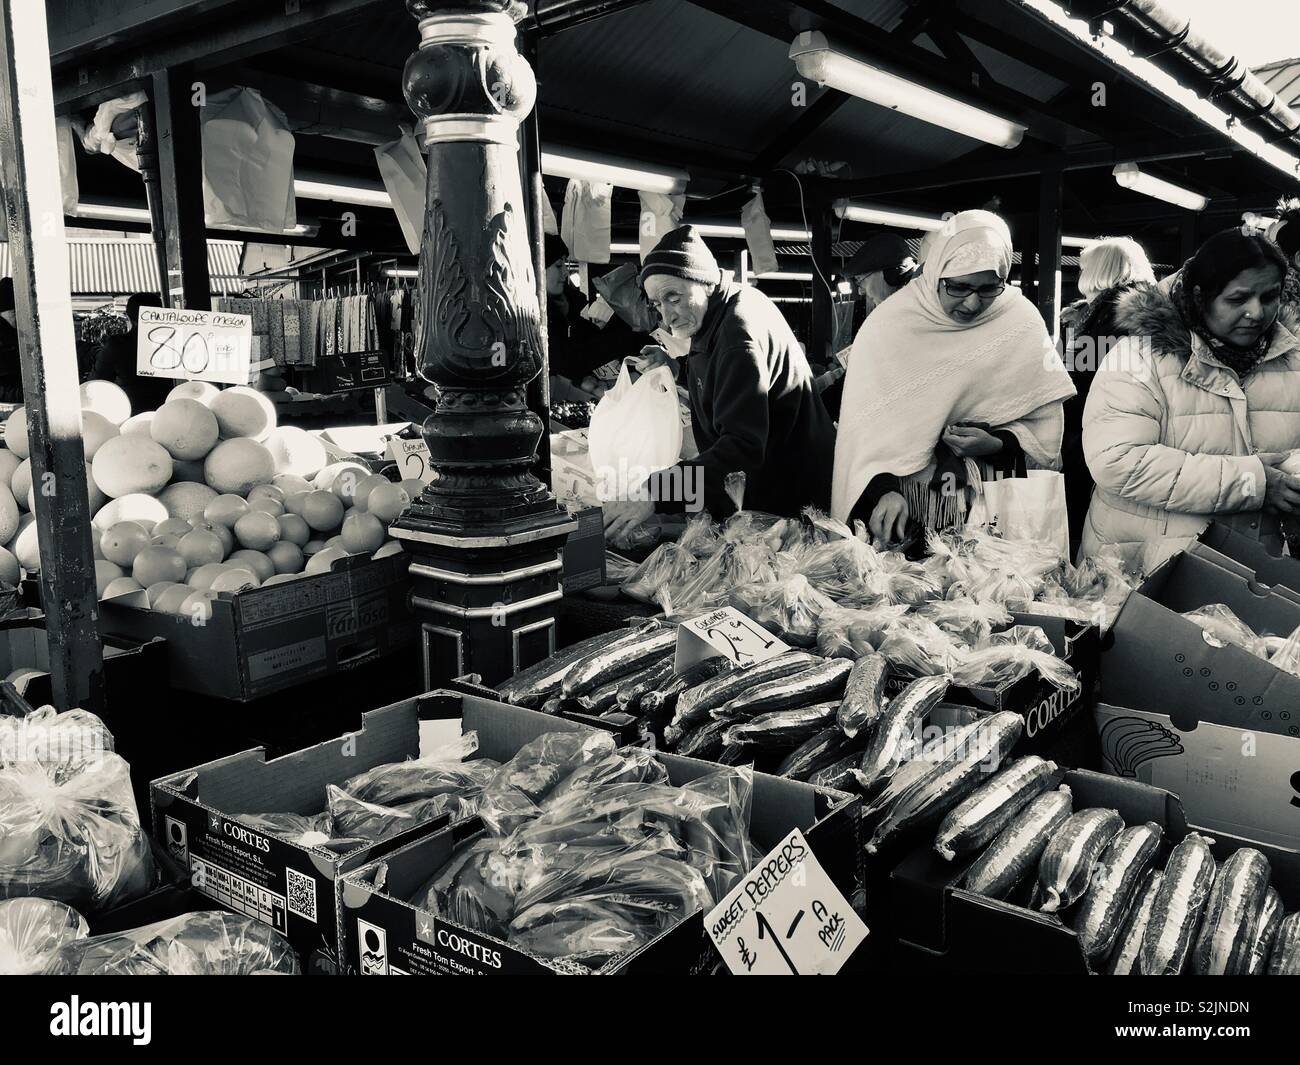 Fruit and vegetable stall in Dewsbury market, Yorkshire - Stock Image